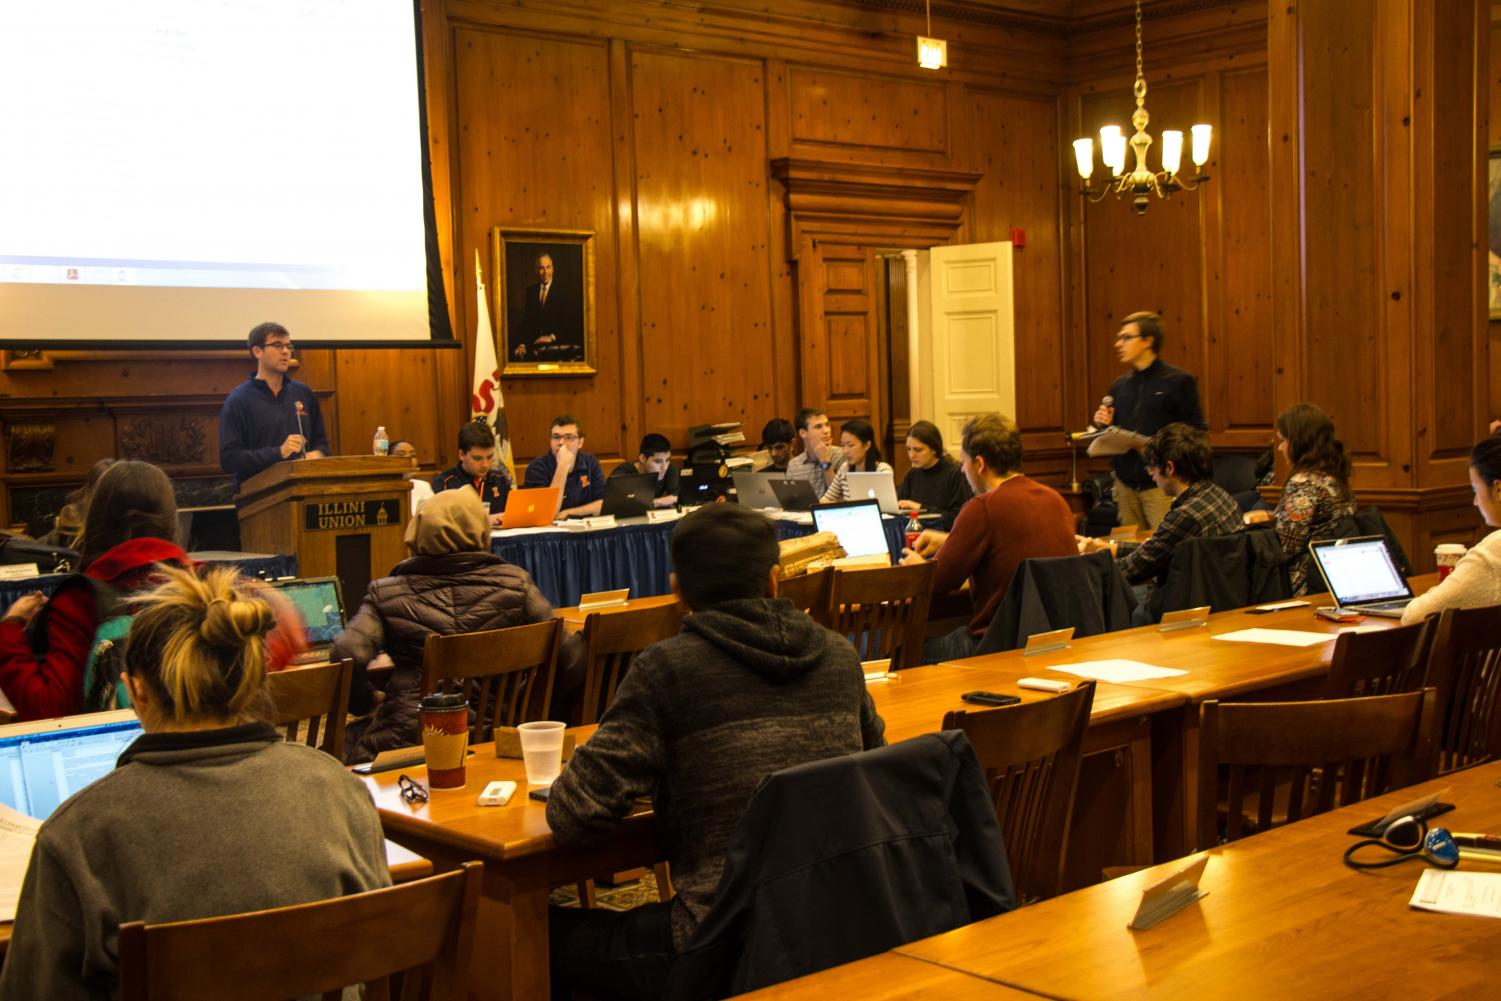 The Illinois Student Government meeting at the Pine Lounge in the Illini Union on Nov. 15, 2017. ISG executive members said they are working on completing initiatives brought up in the semester, including a sexual assault prevention task force.